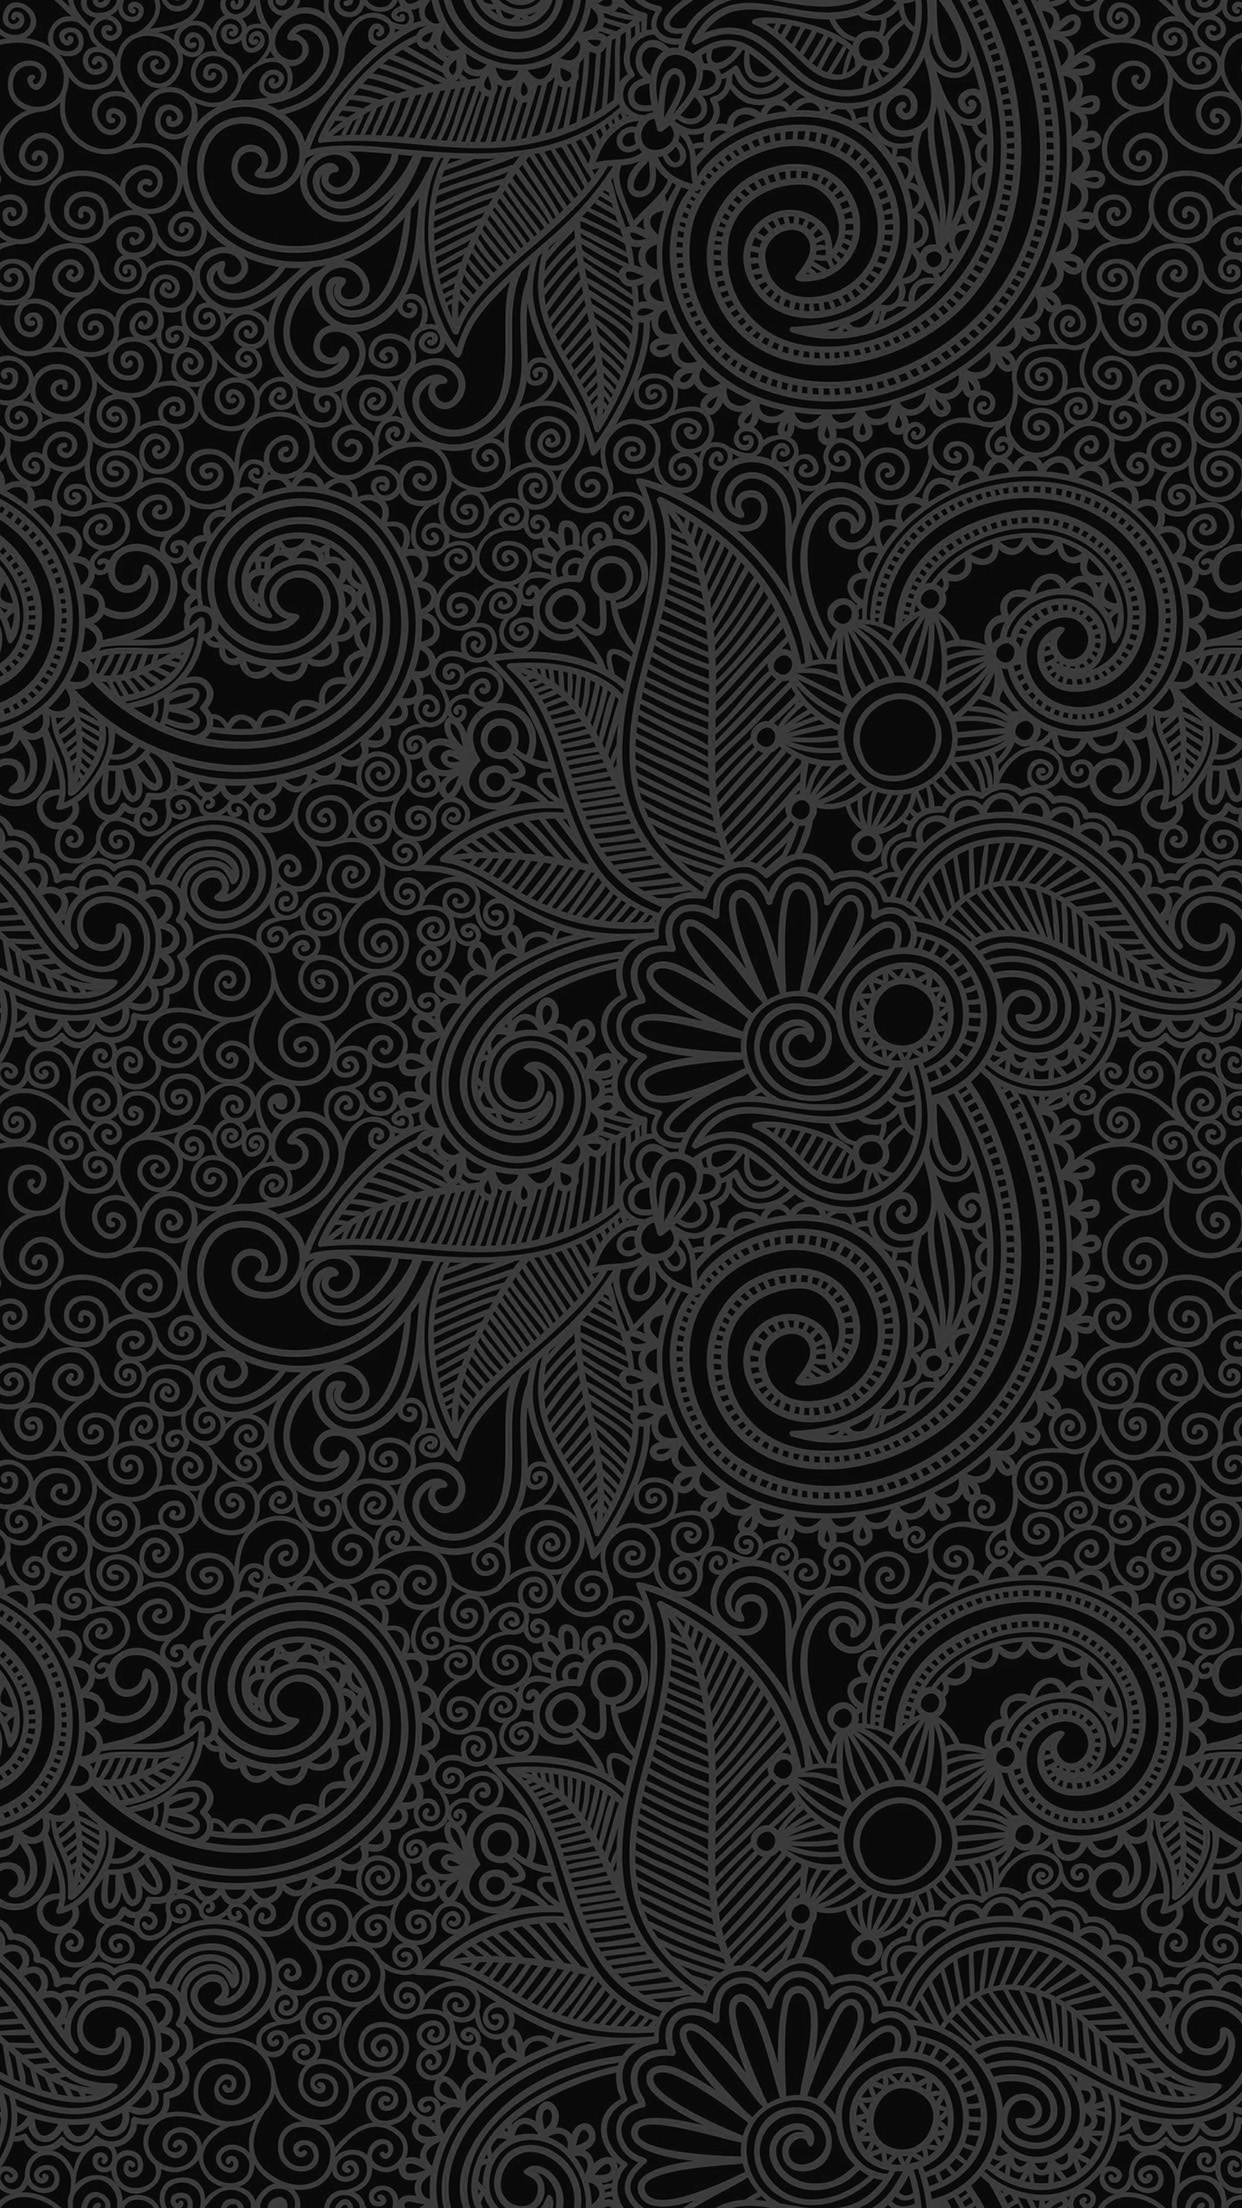 Iphone6papers Co Iphone 6 Wallpaper Vk29 Wallpaper